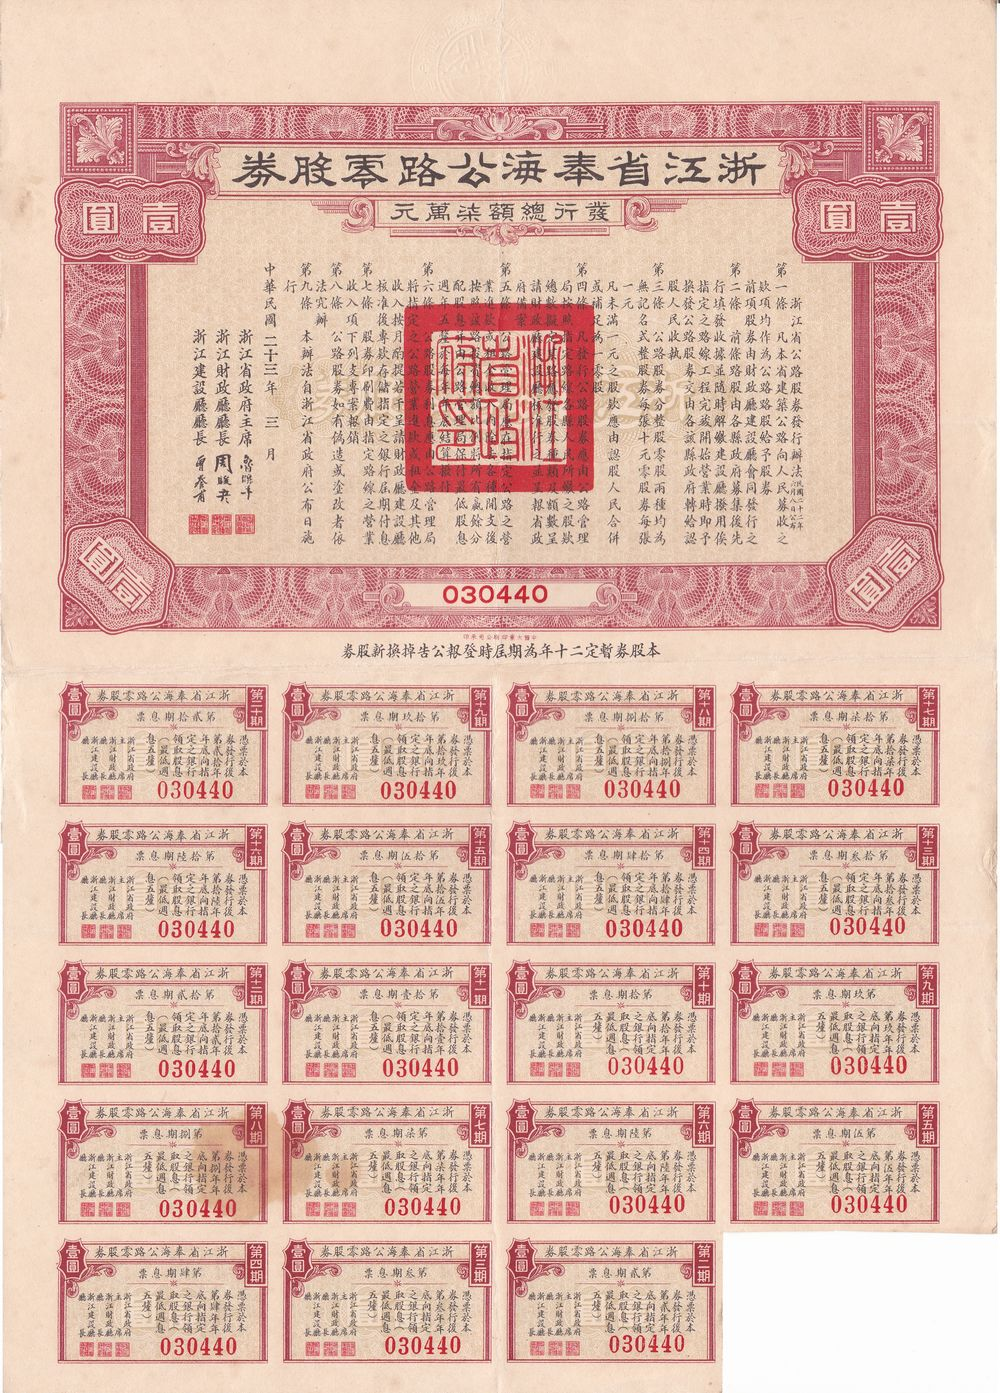 B3032, Zhejiang Feng-Hai Highway 5% Loan, One Dollar Bond, China 1934